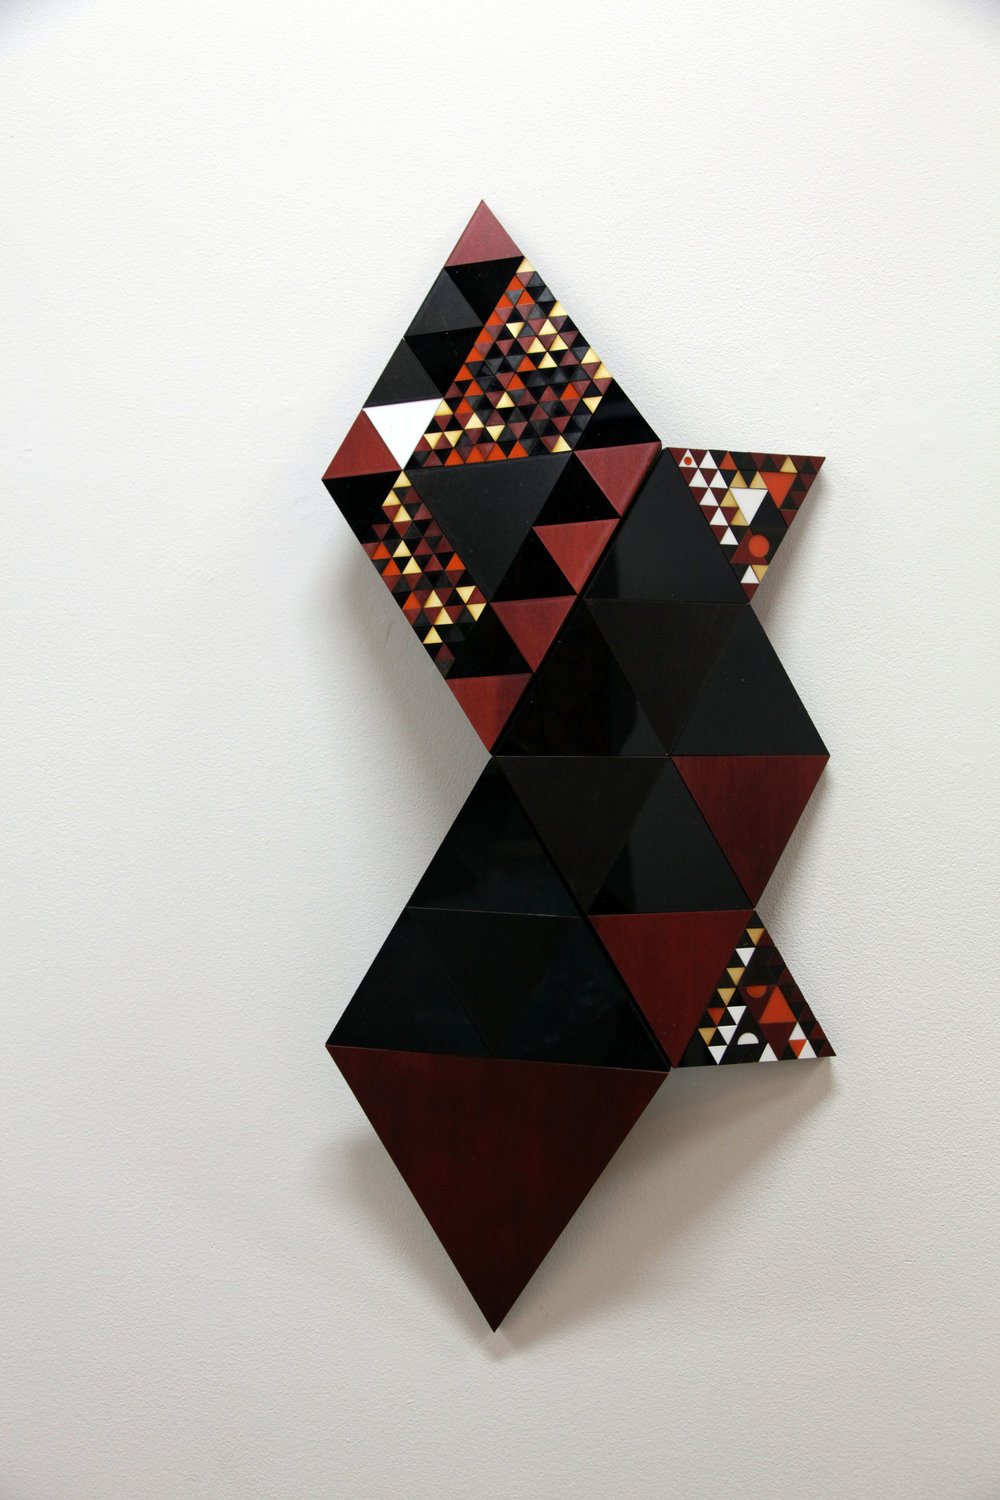 Troy Innocent,  Oekos,  2015, laser cut plywood and acrylic, 51 x 76cm